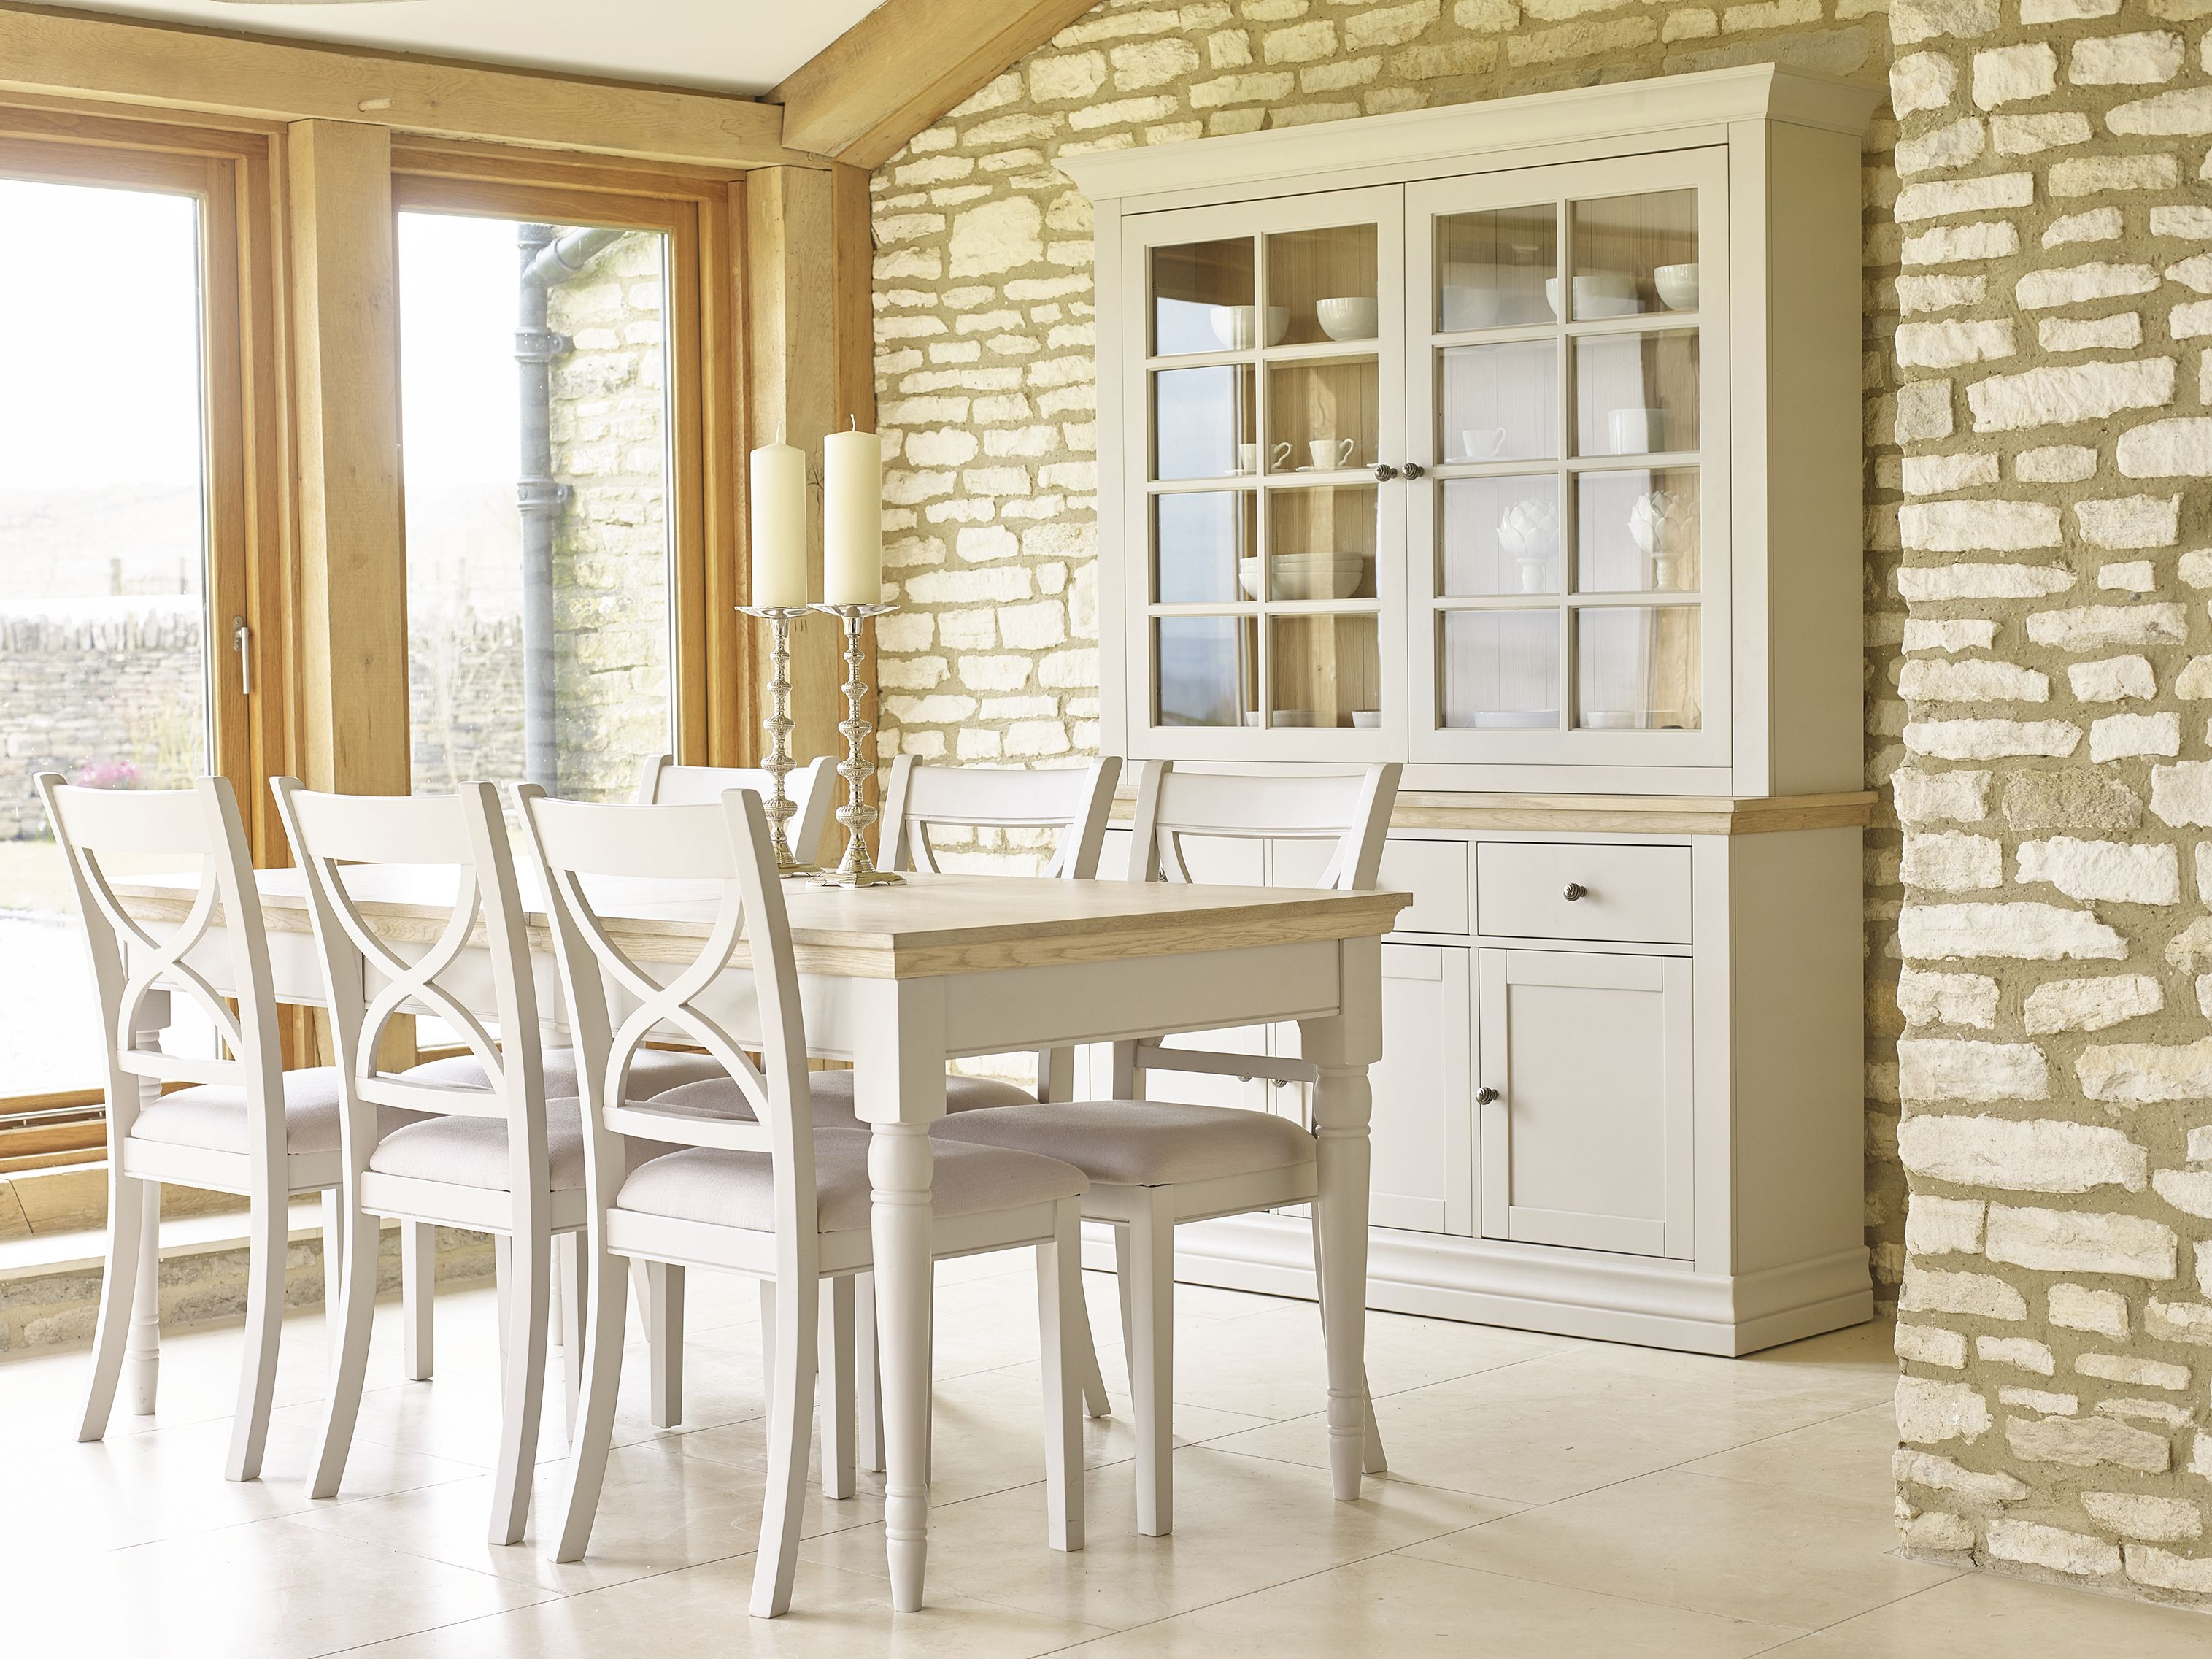 The Corndell Annecy Dining Room Hand Painted In A Cool Cotton 1 Of